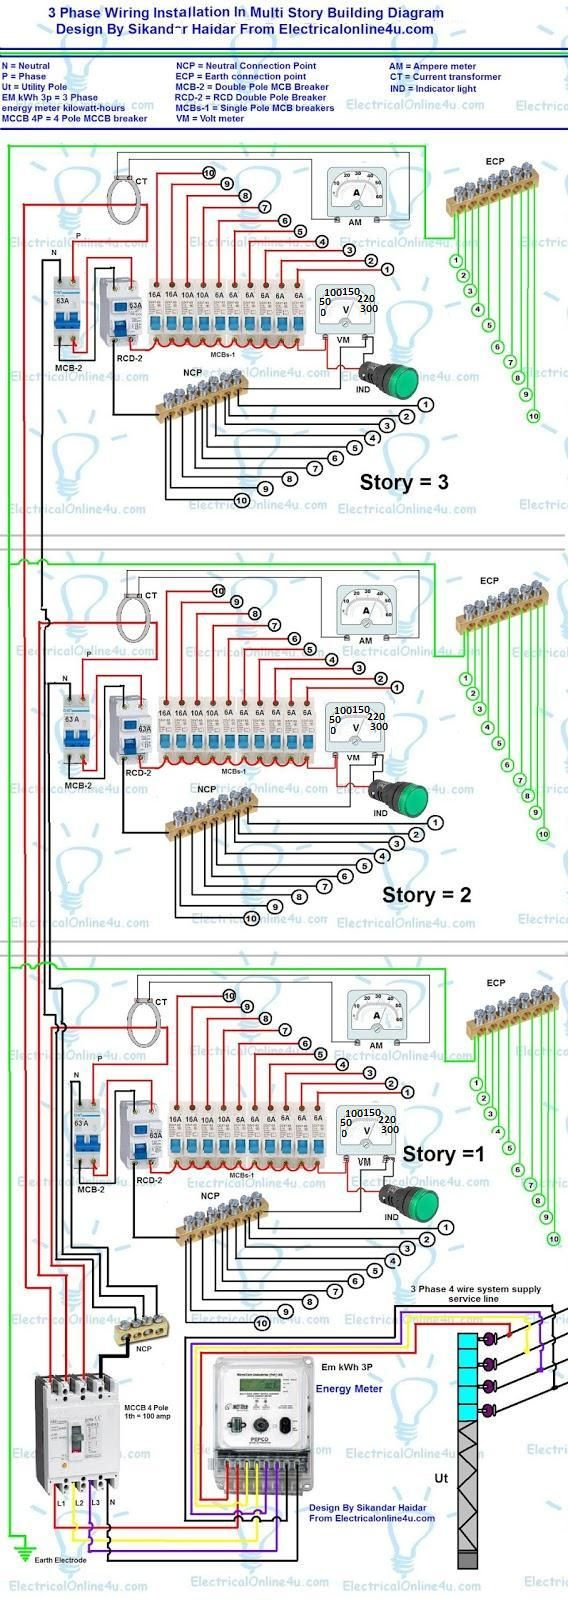 3 phase wiring installation diagram 3 phase wiring installation diagram basic electrical  [ 568 x 1600 Pixel ]